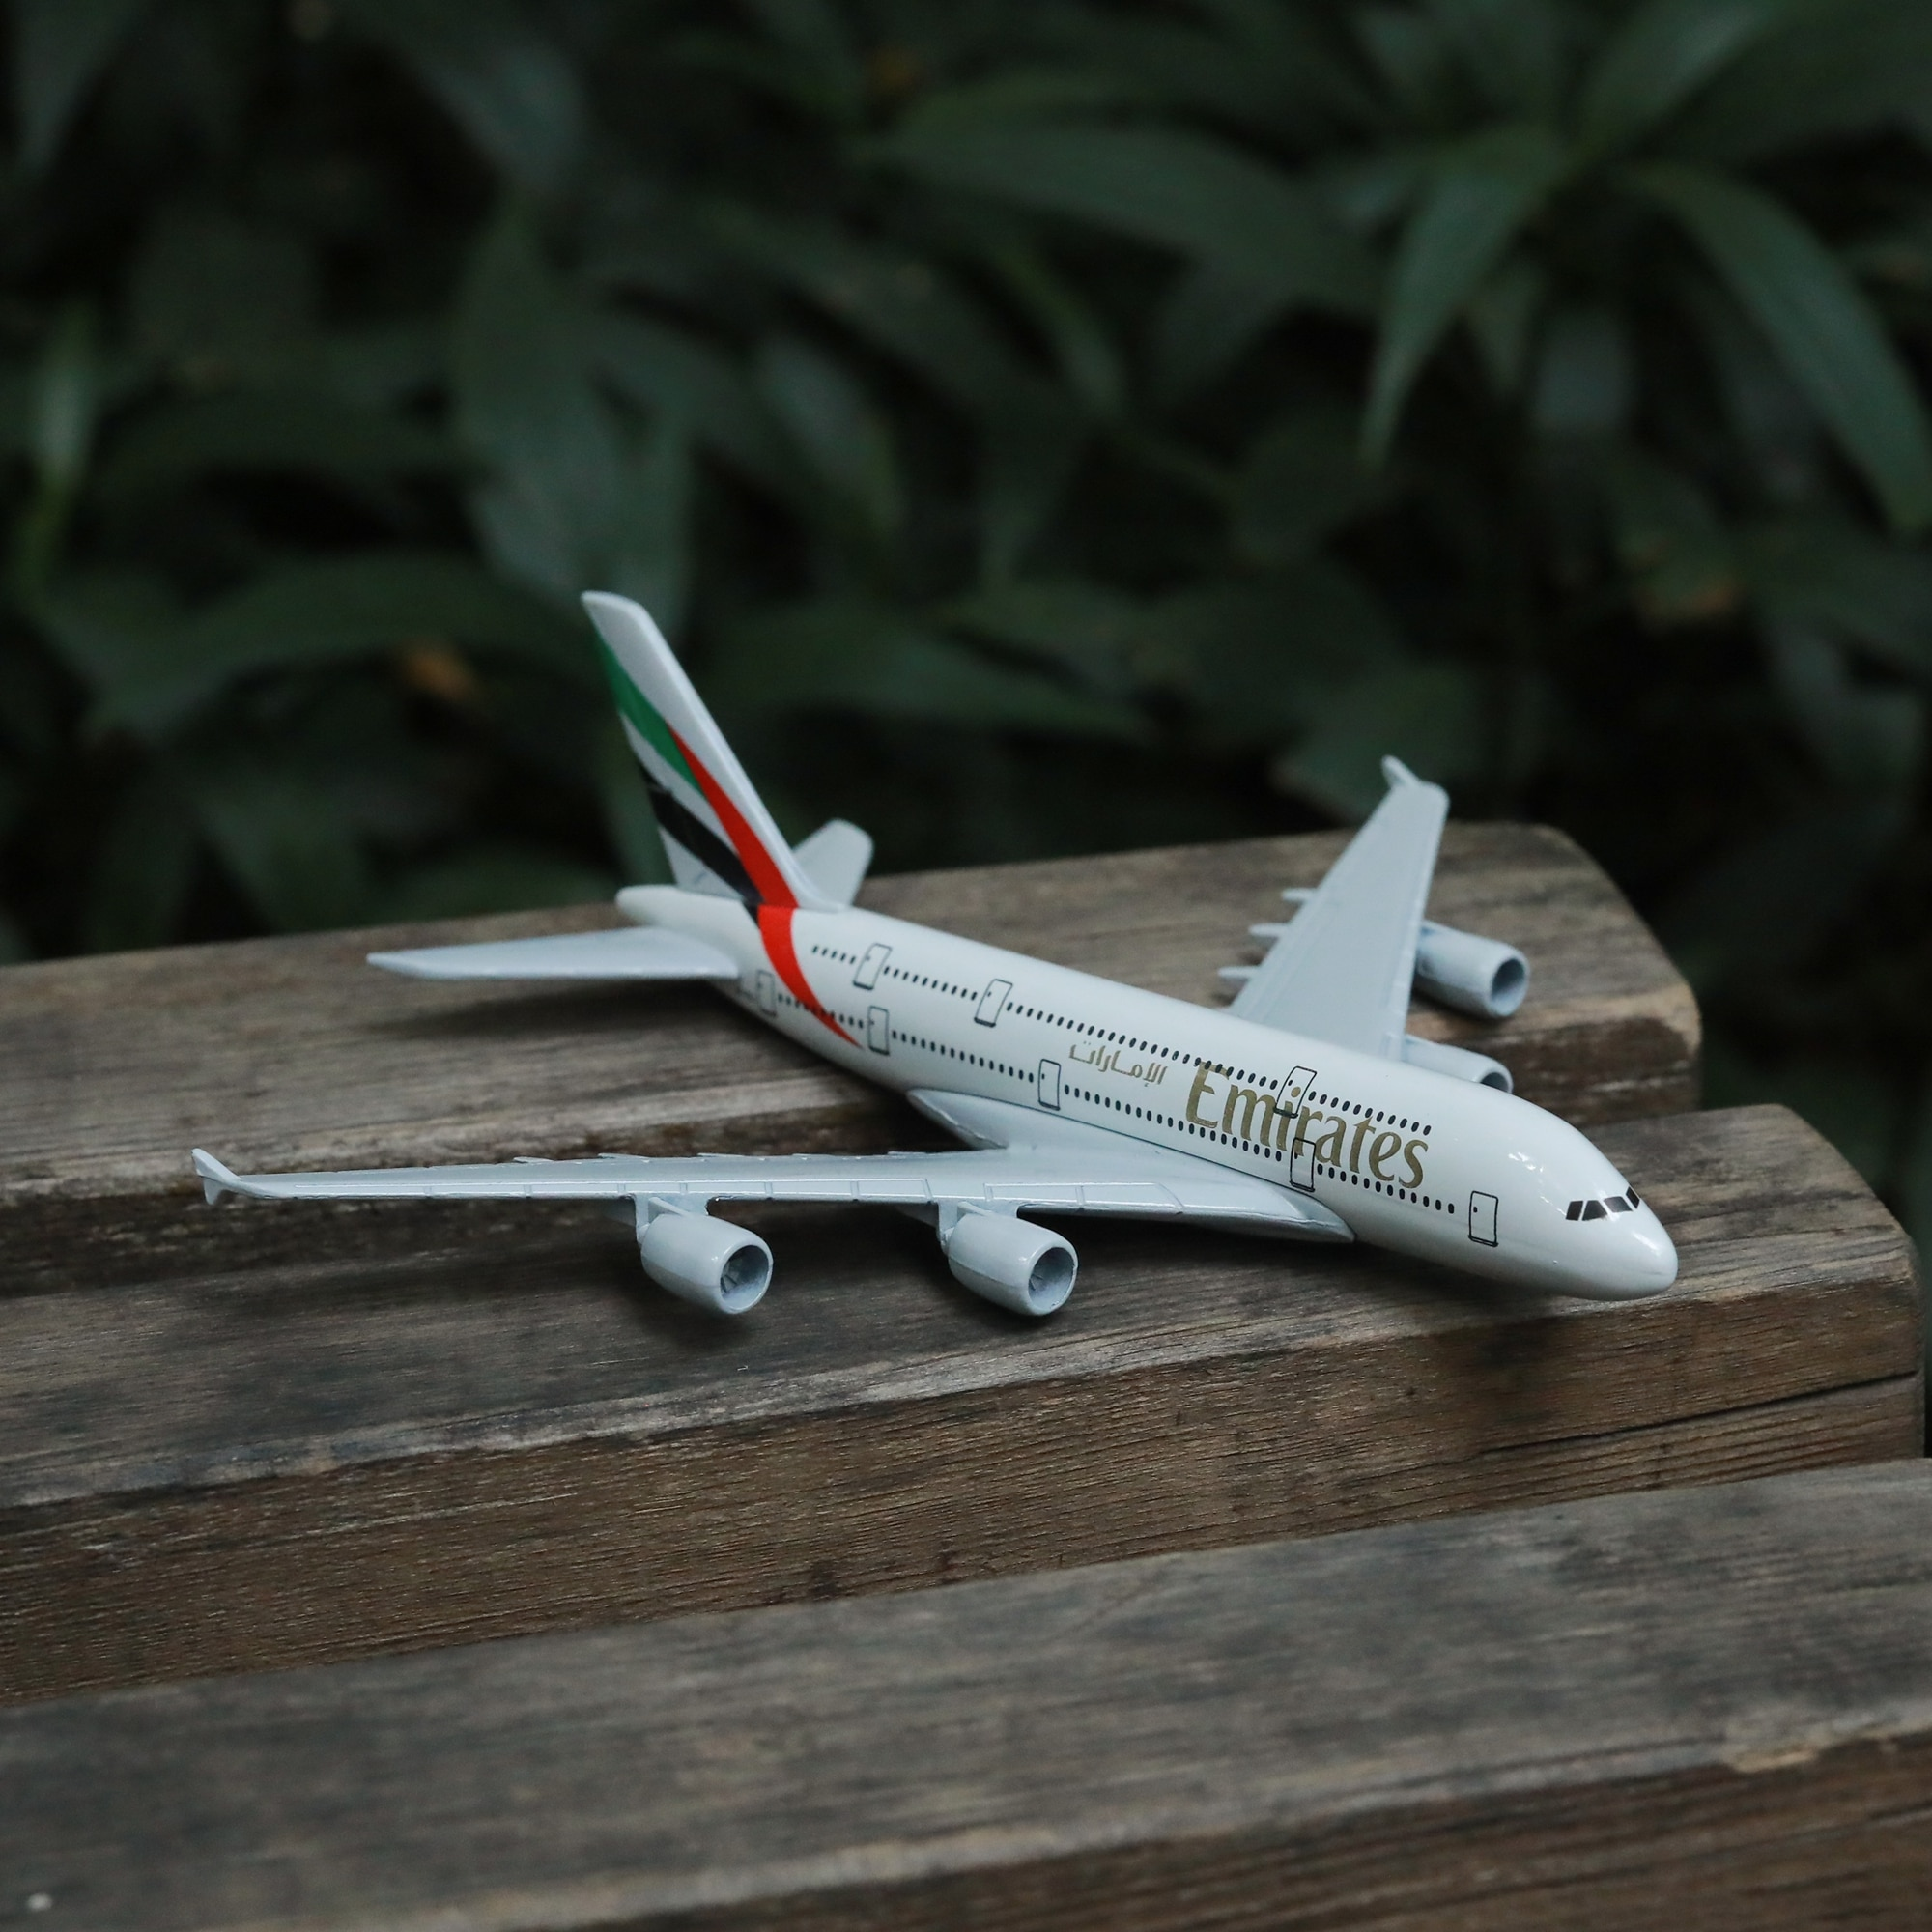 Emirates Airlines A380 Airplane Diecast Aircraft Model 6 Metal Plane Aeroplane Home Office Decor Mini Moto Toys for Children air france a380 airplane diecast aircraft model 6 metal plane aeroplane home office decor mini moto toys for children